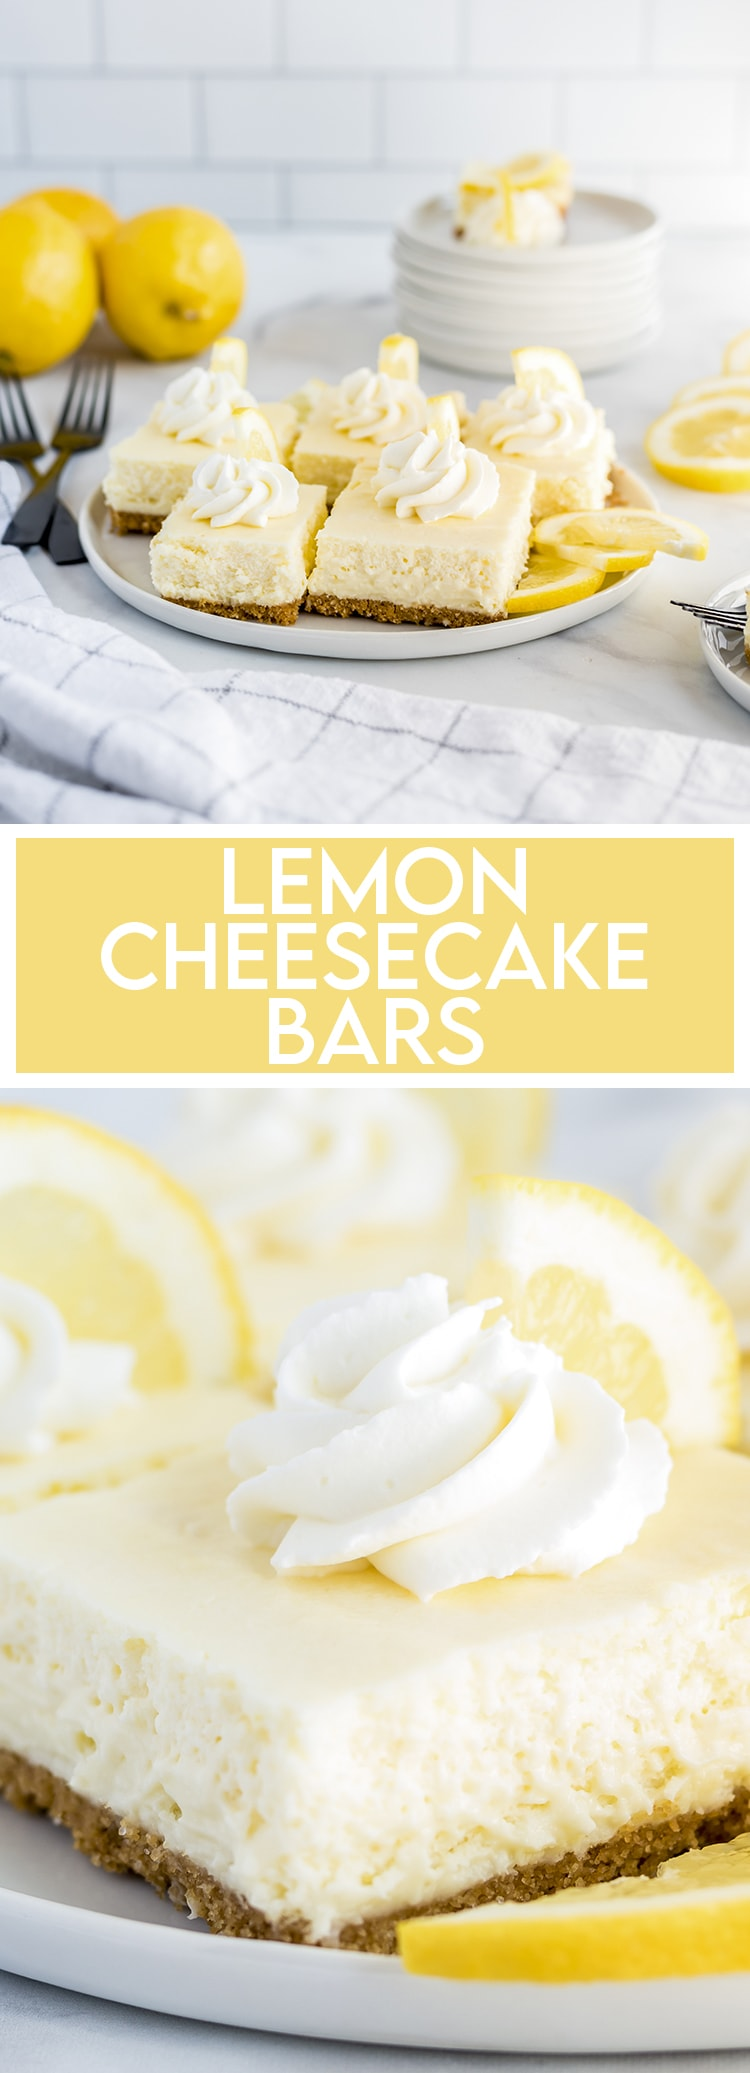 Lemon Cheesecake Bars on a white plate with text overlay for pinterest